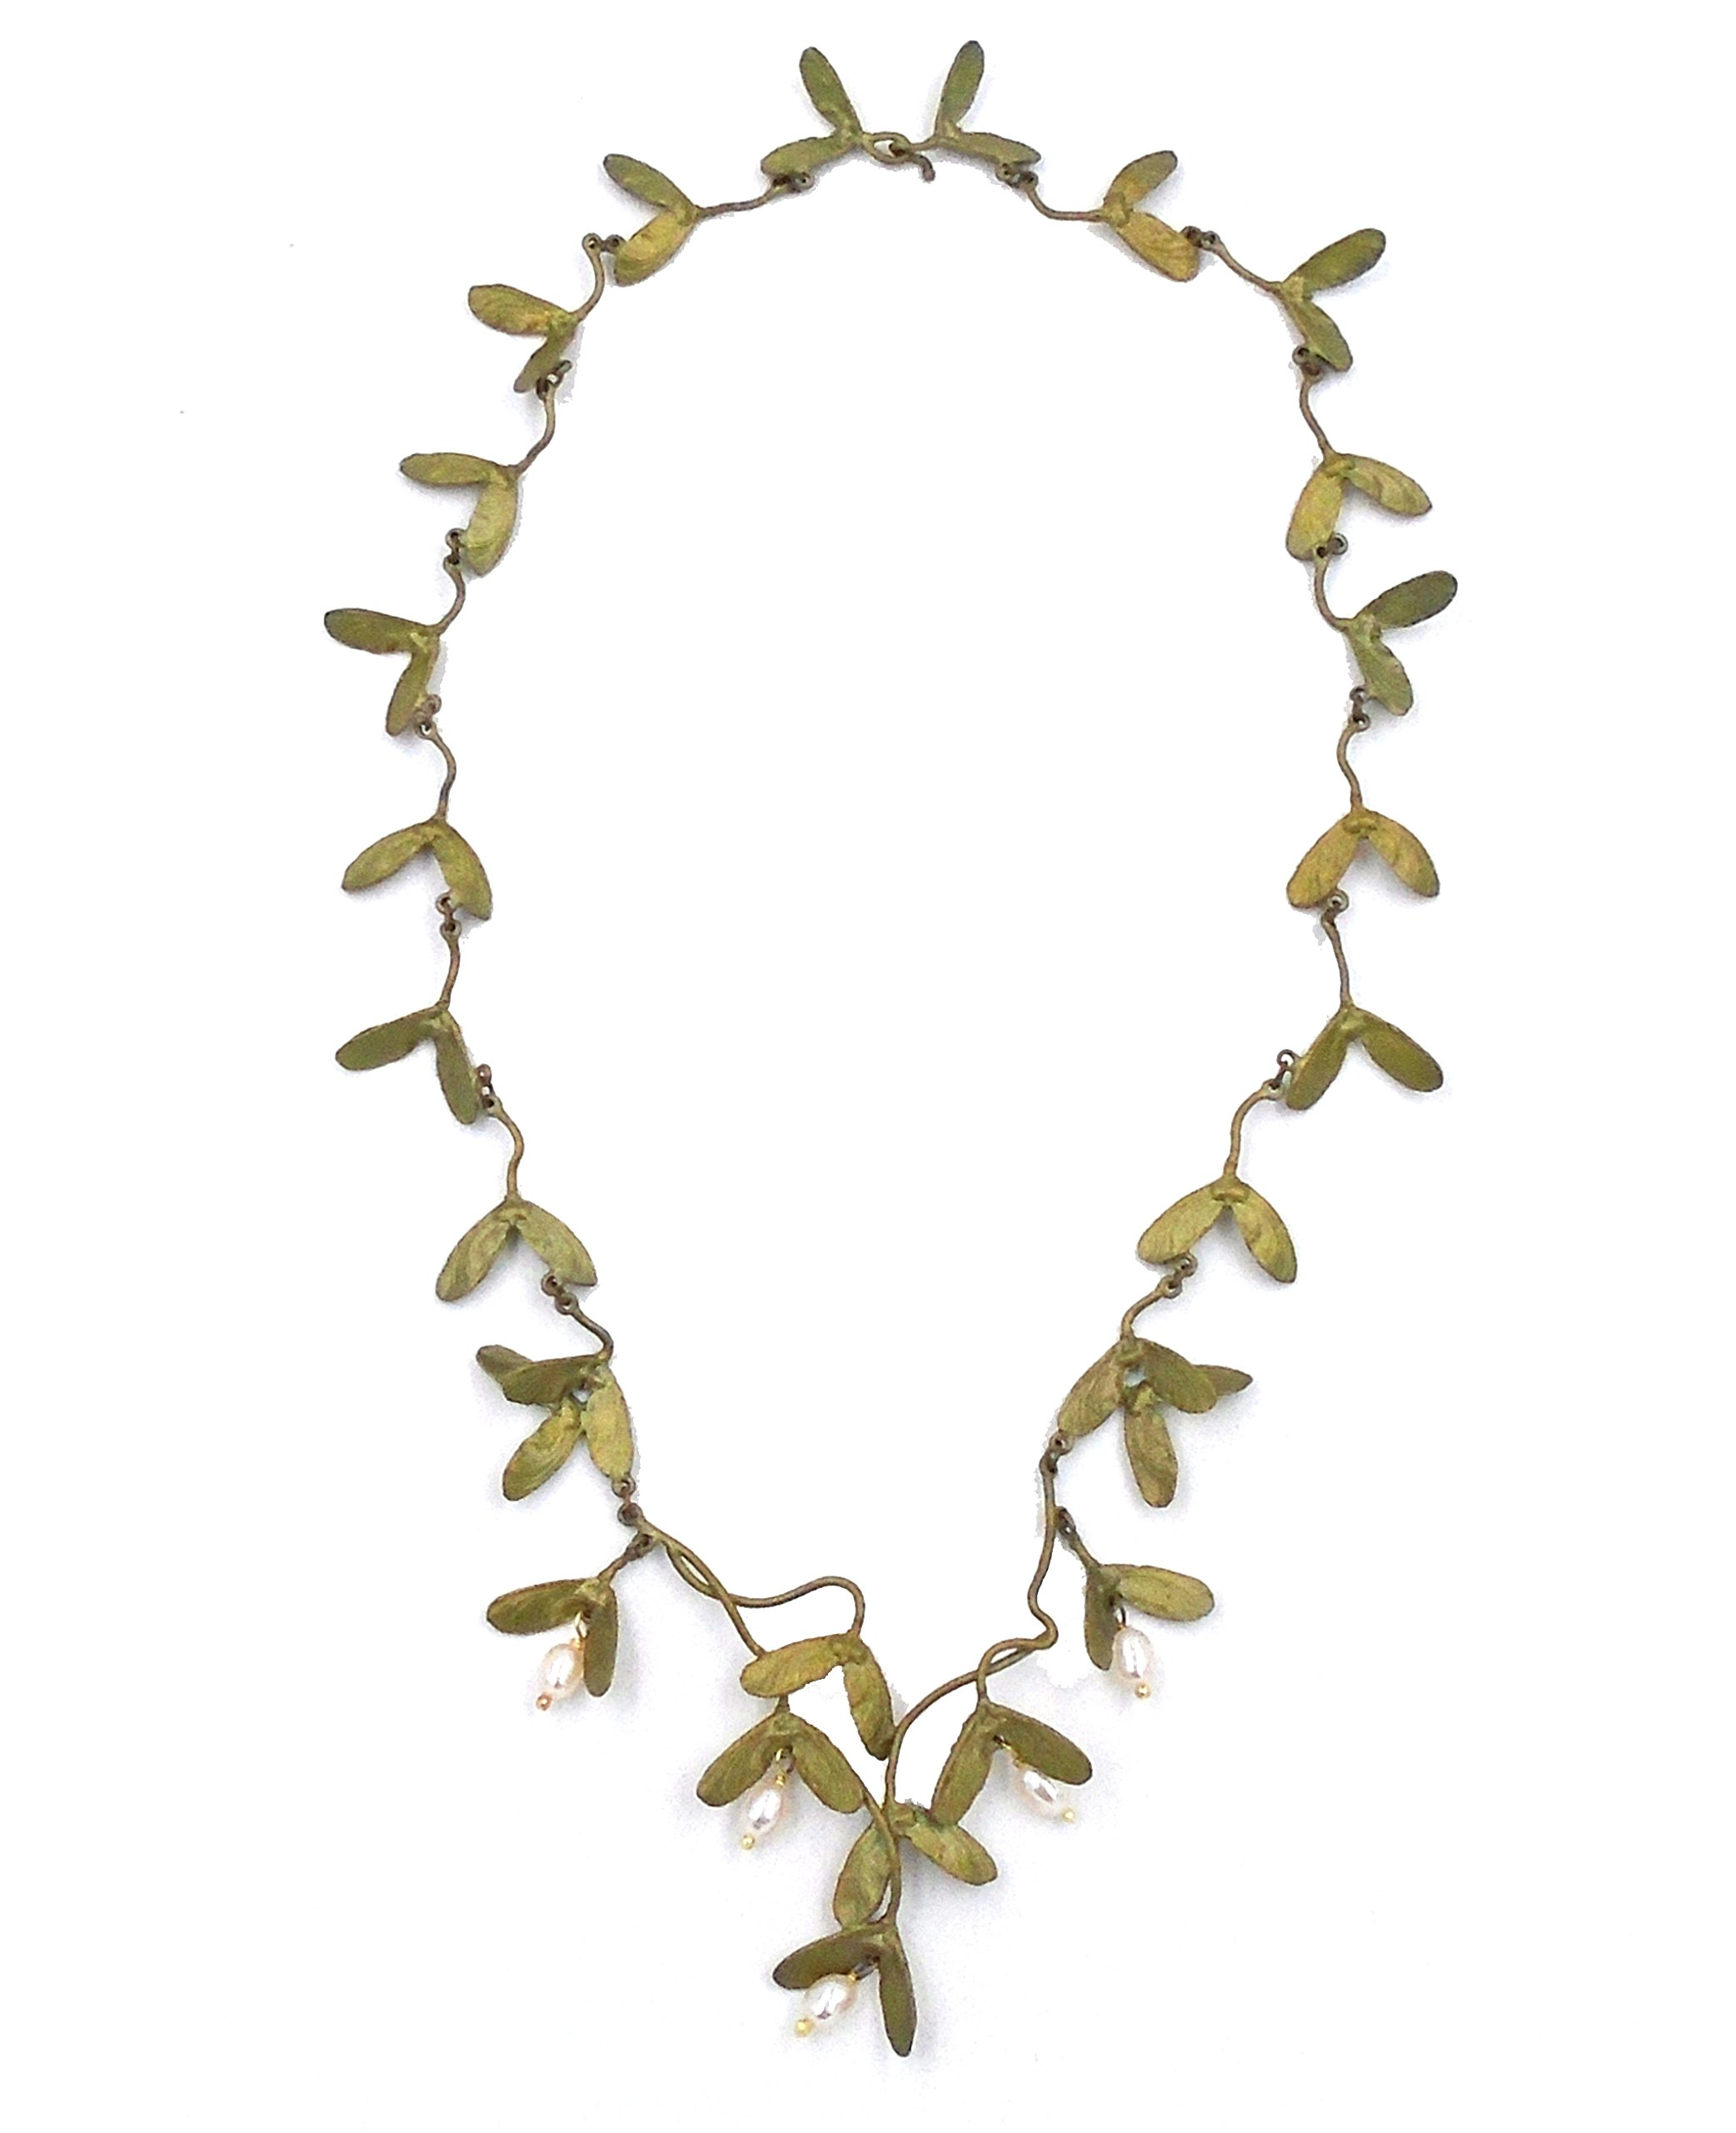 OURS EXCLUSIVELY JAPENESE MAPLE LEAF & PEARL NECKLACE/PENDANT BY MICHAEL MICHAUD FOR SILVER SEA